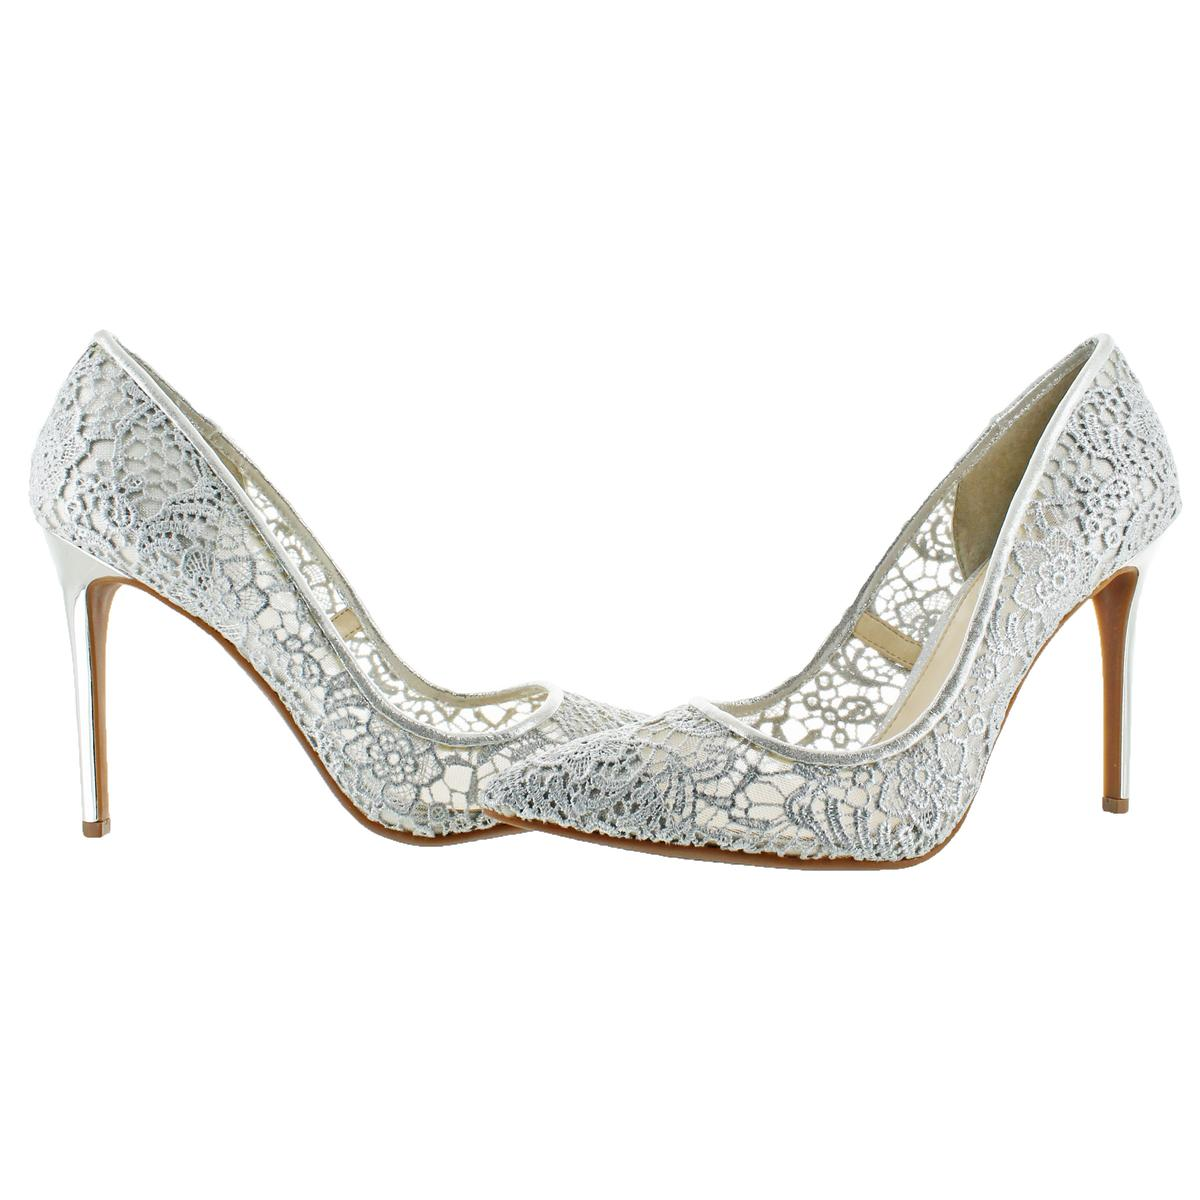 Jessica Simpson Praylee2 Women/'s Crochet Floral Print Stiletto Shoes